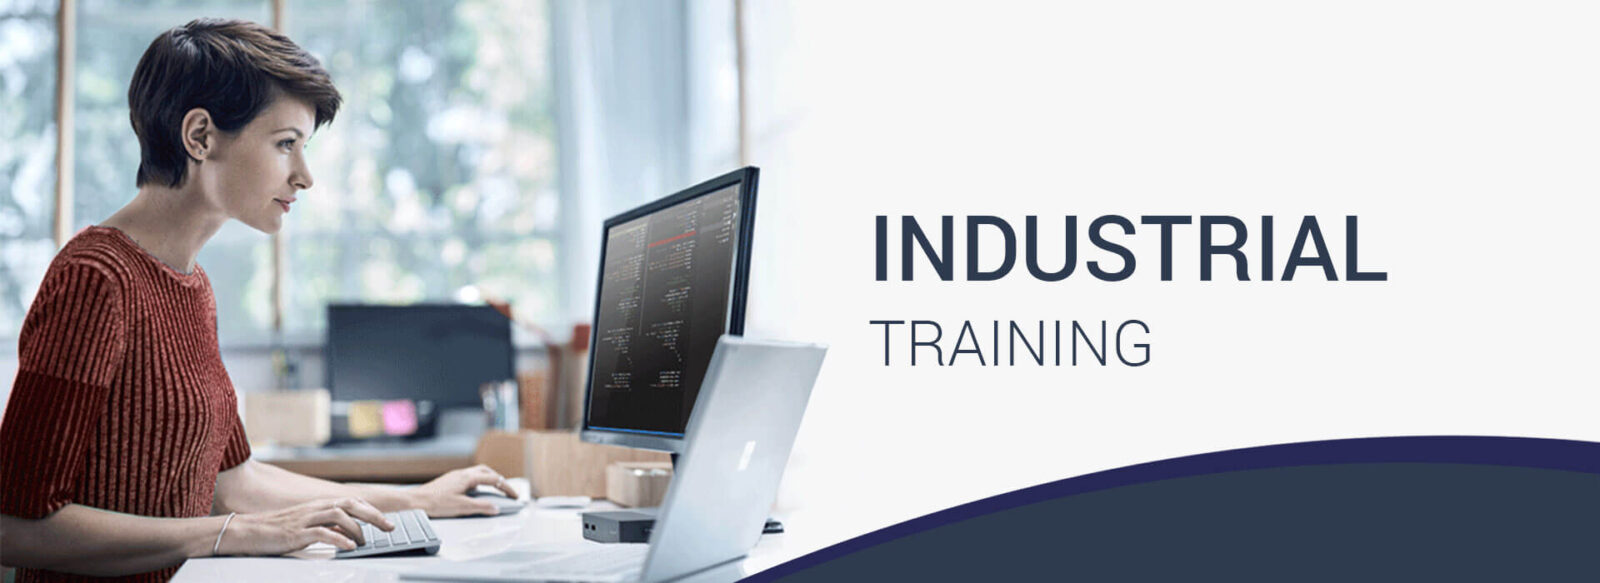 Getting Future Ready With Industrial Training